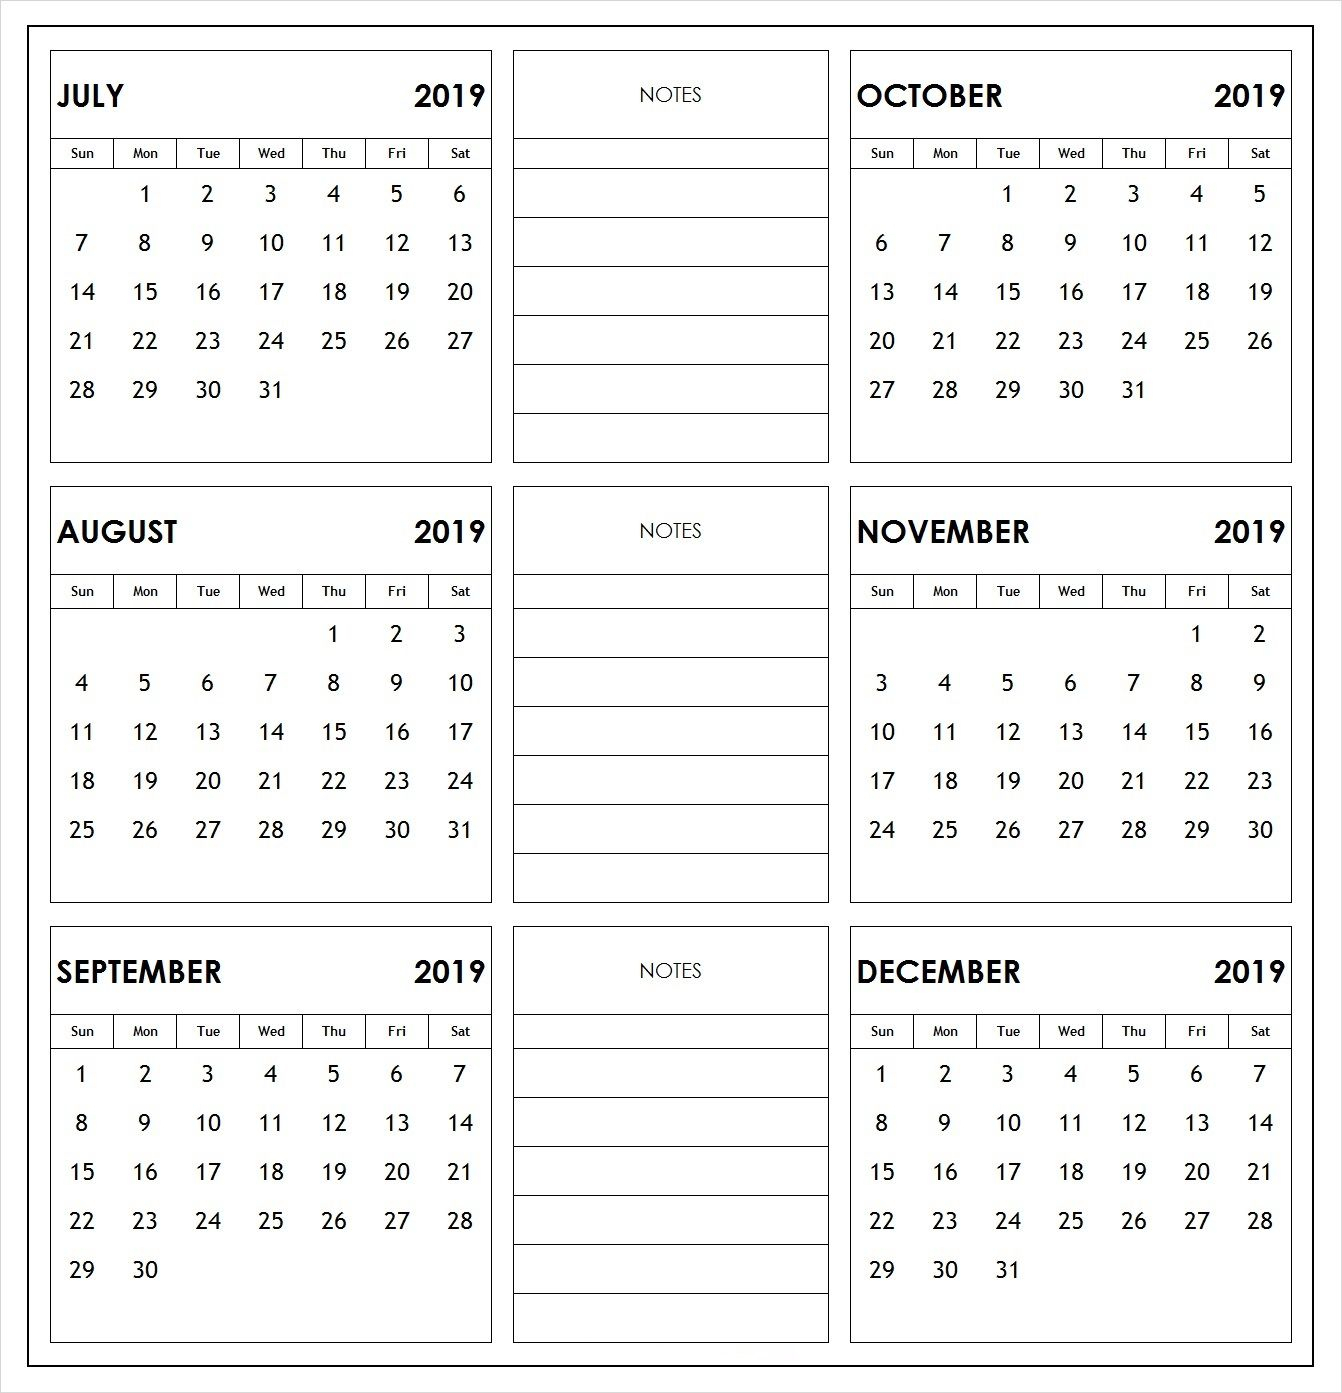 2019 6 Months Half Year Calendar Printable Download with 6 Month Calendar Printable